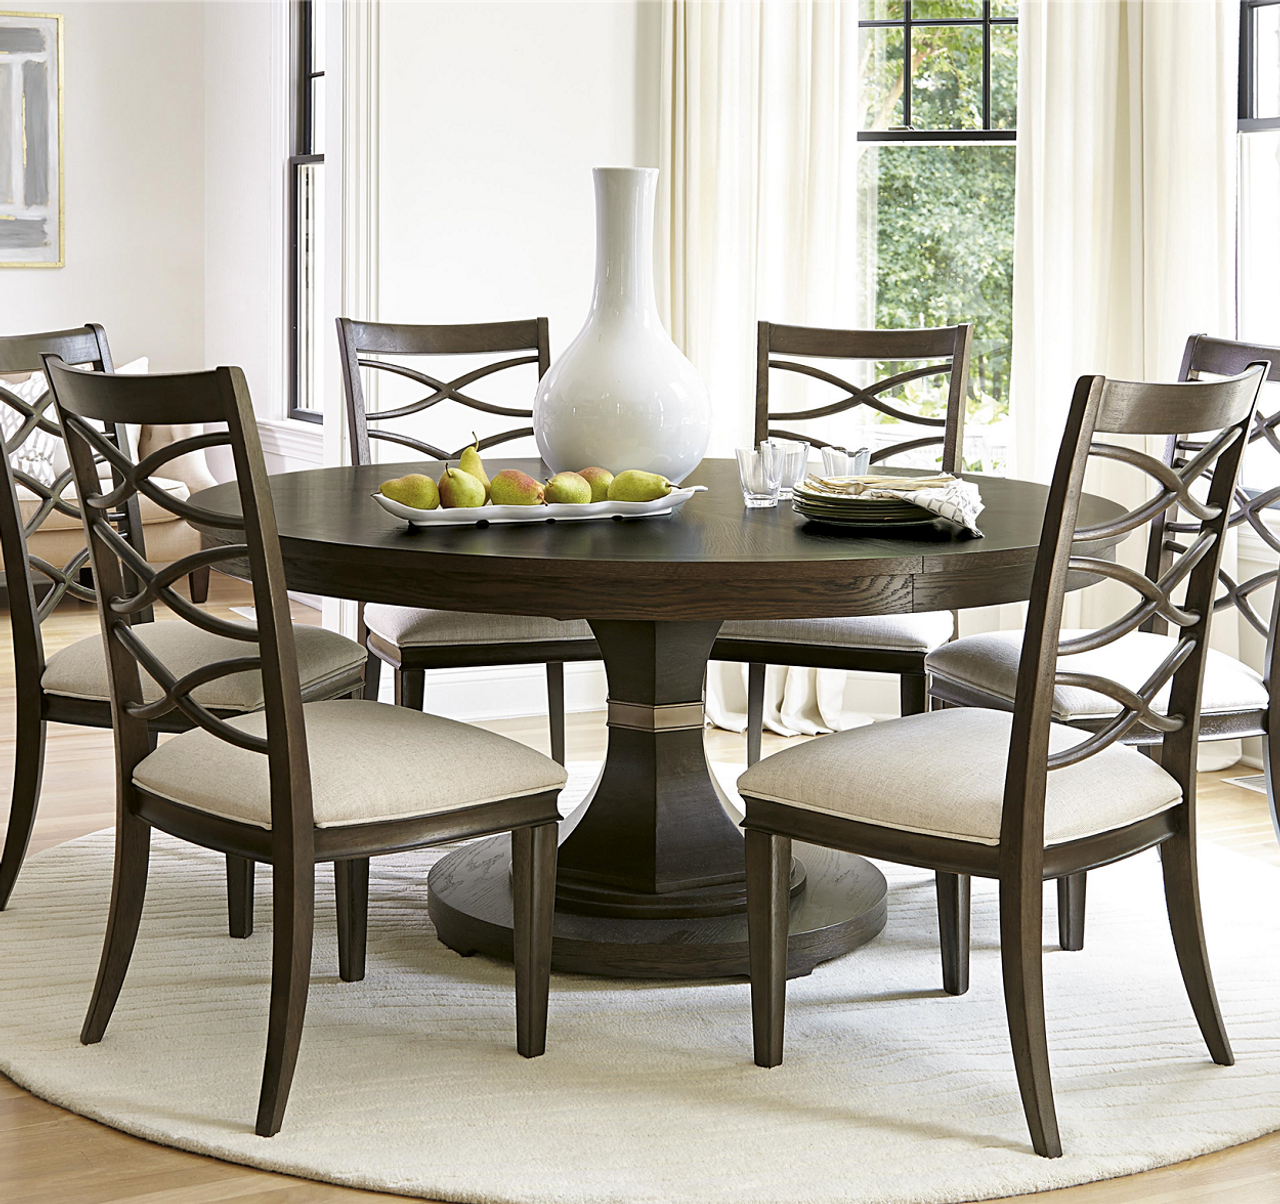 California Rustic Oak Expandable Round Dining Table 64 Zin Home